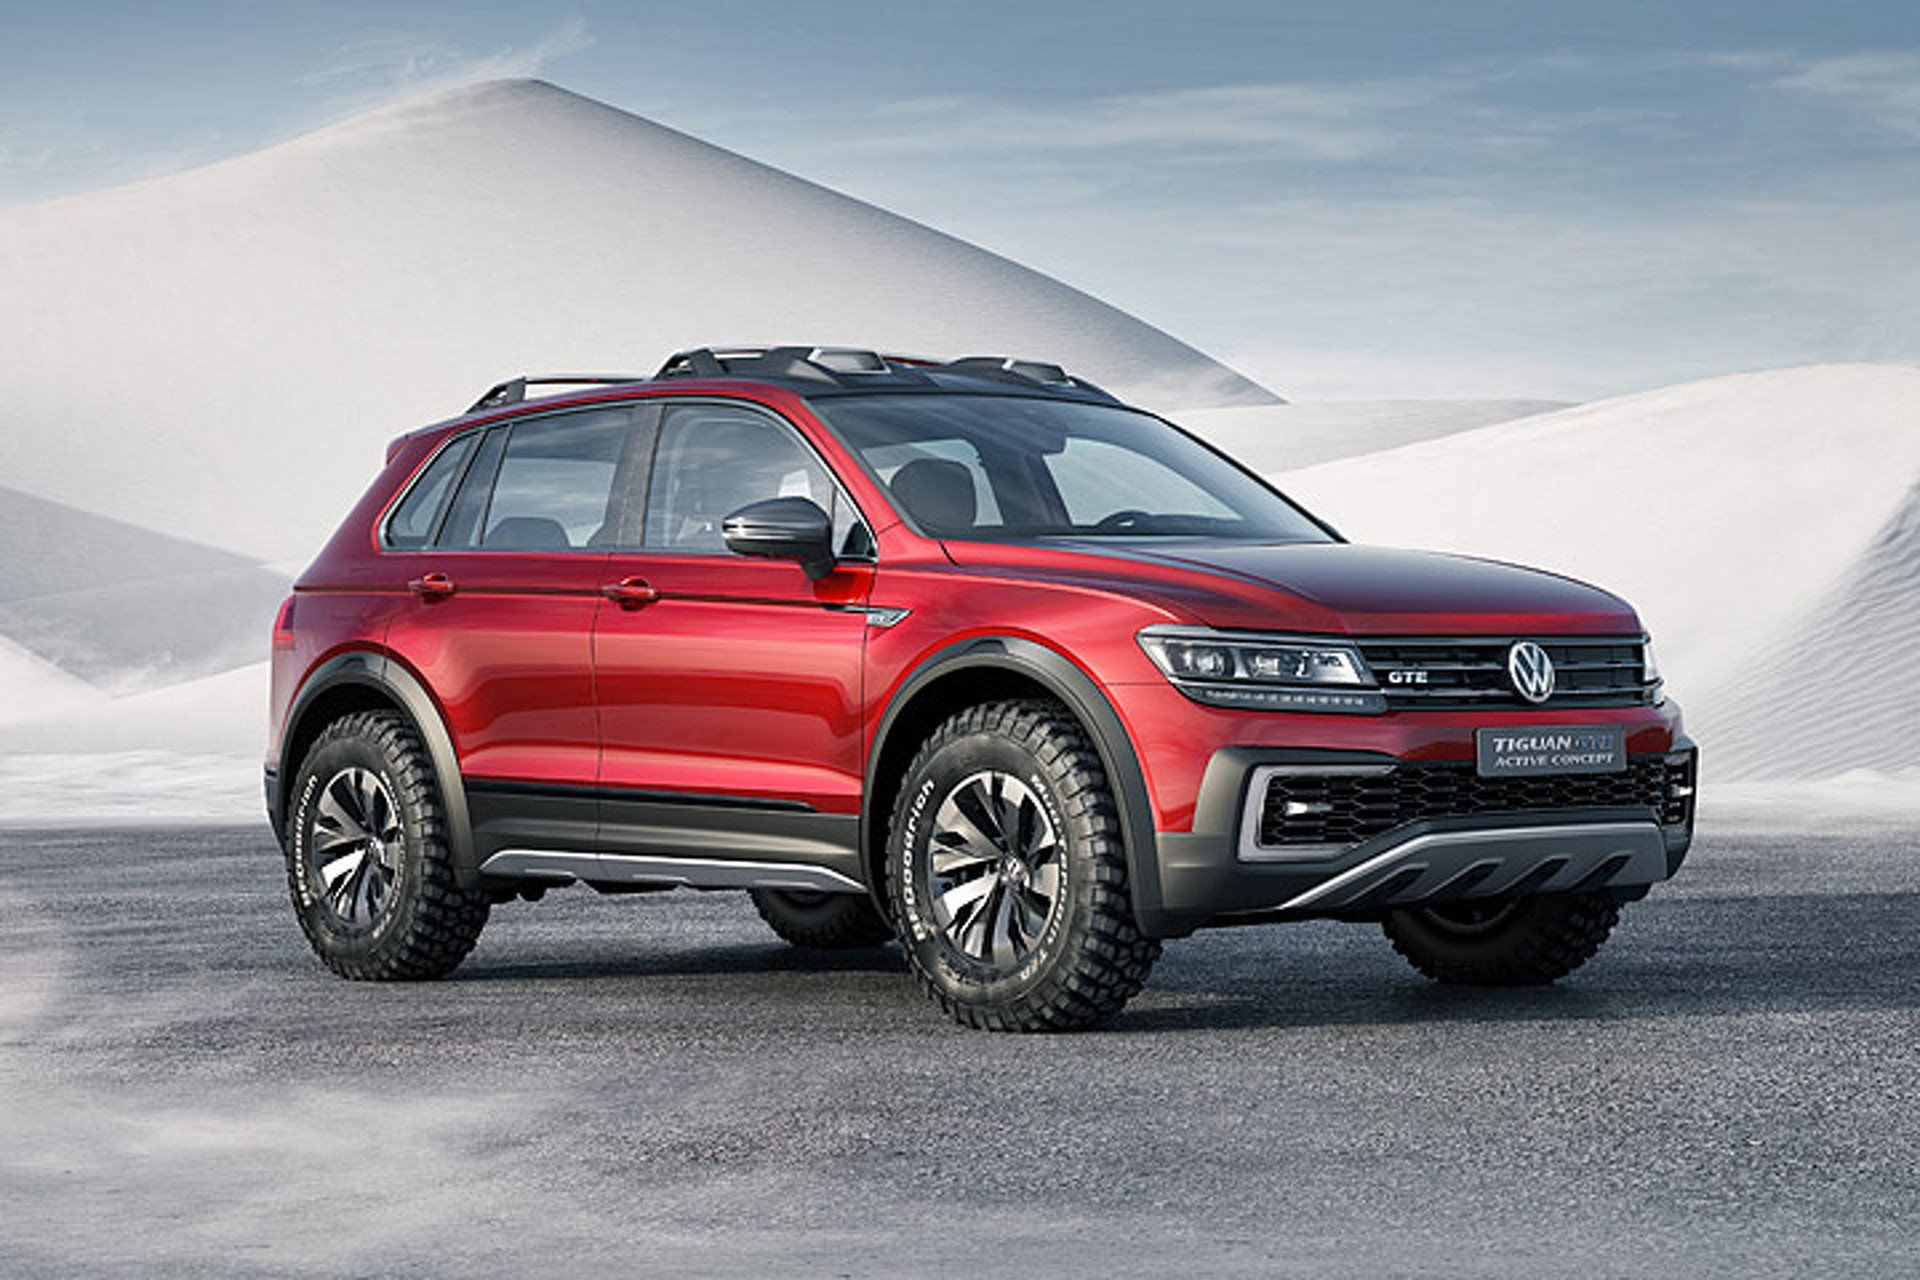 New 2019 Volkswagen-Tiguan 2.0T SEL Premium R-Line 4Motion Tiguan 2.0T SEL Premium R-Line 4Motion for sale $38,895 at M and V Leasing in Brooklyn NY 11223 1